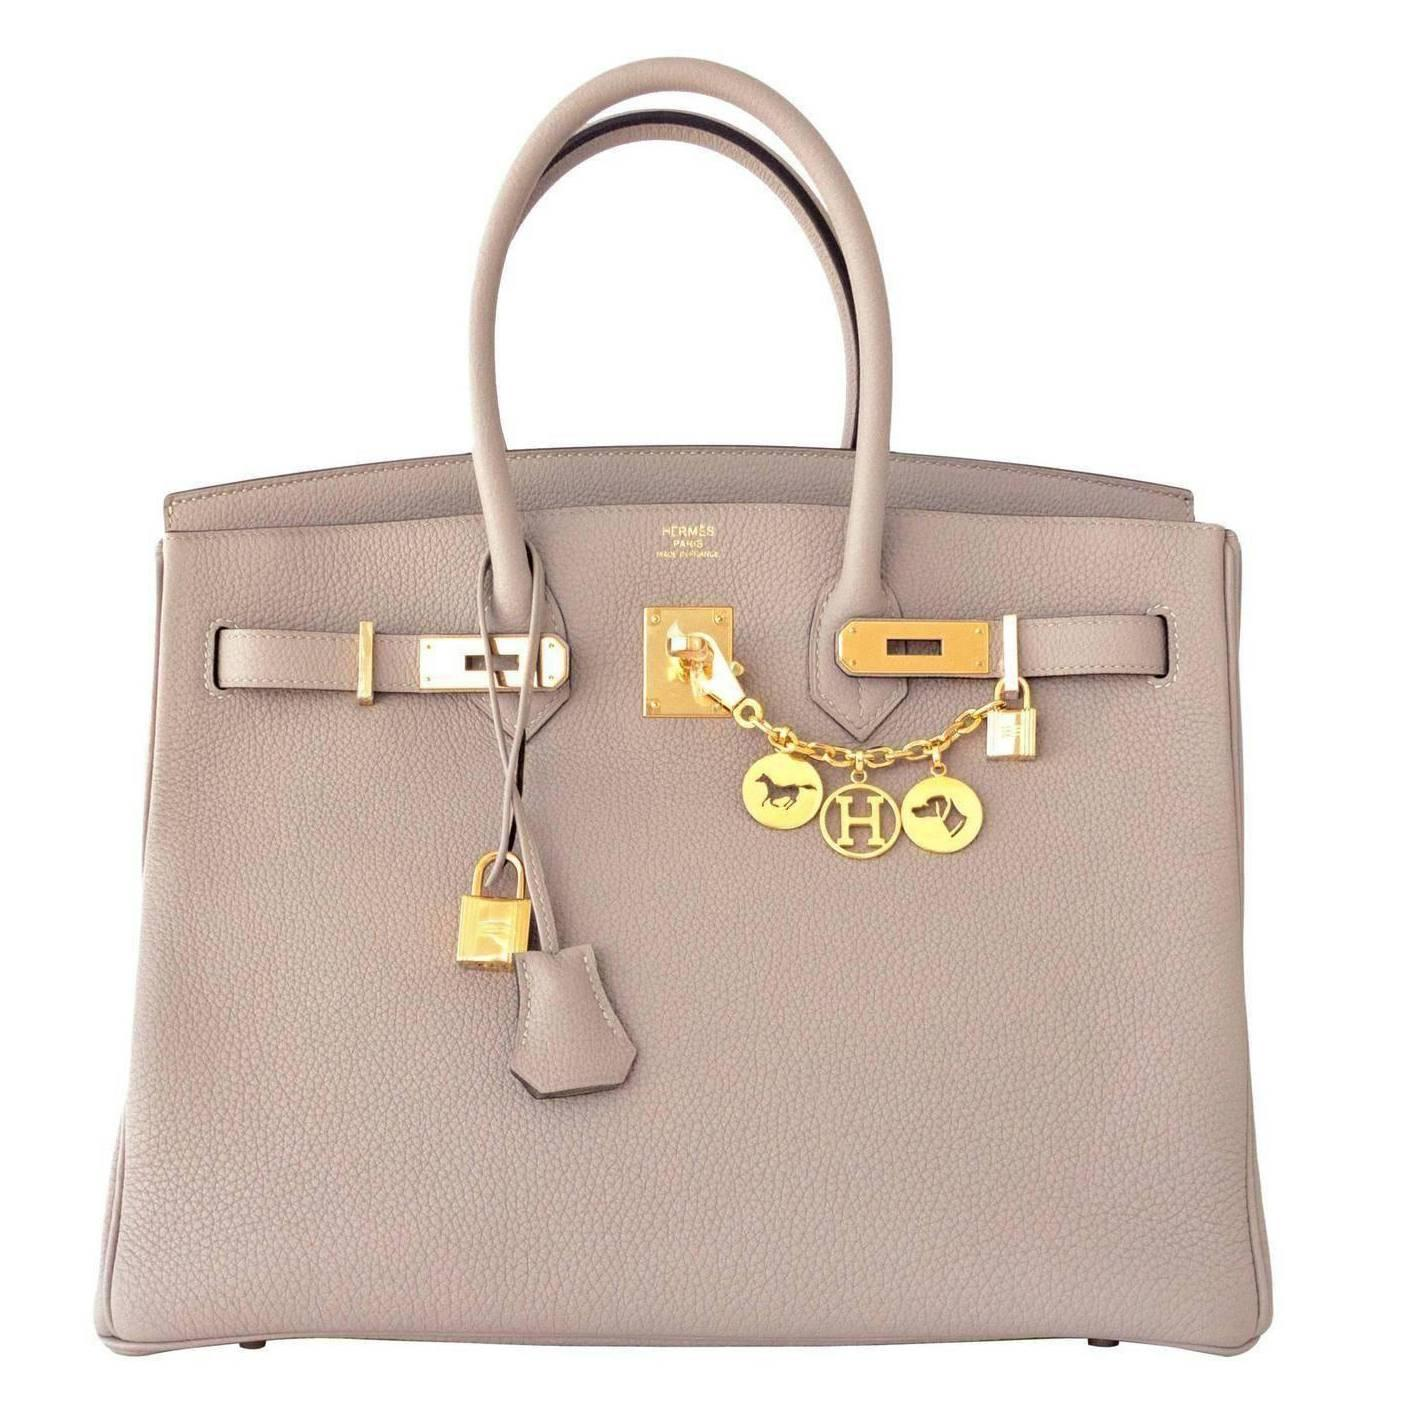 8a2de8834a6f Hermes Birkin 35Cm Handbags - 272 For Sale on 1stdibs